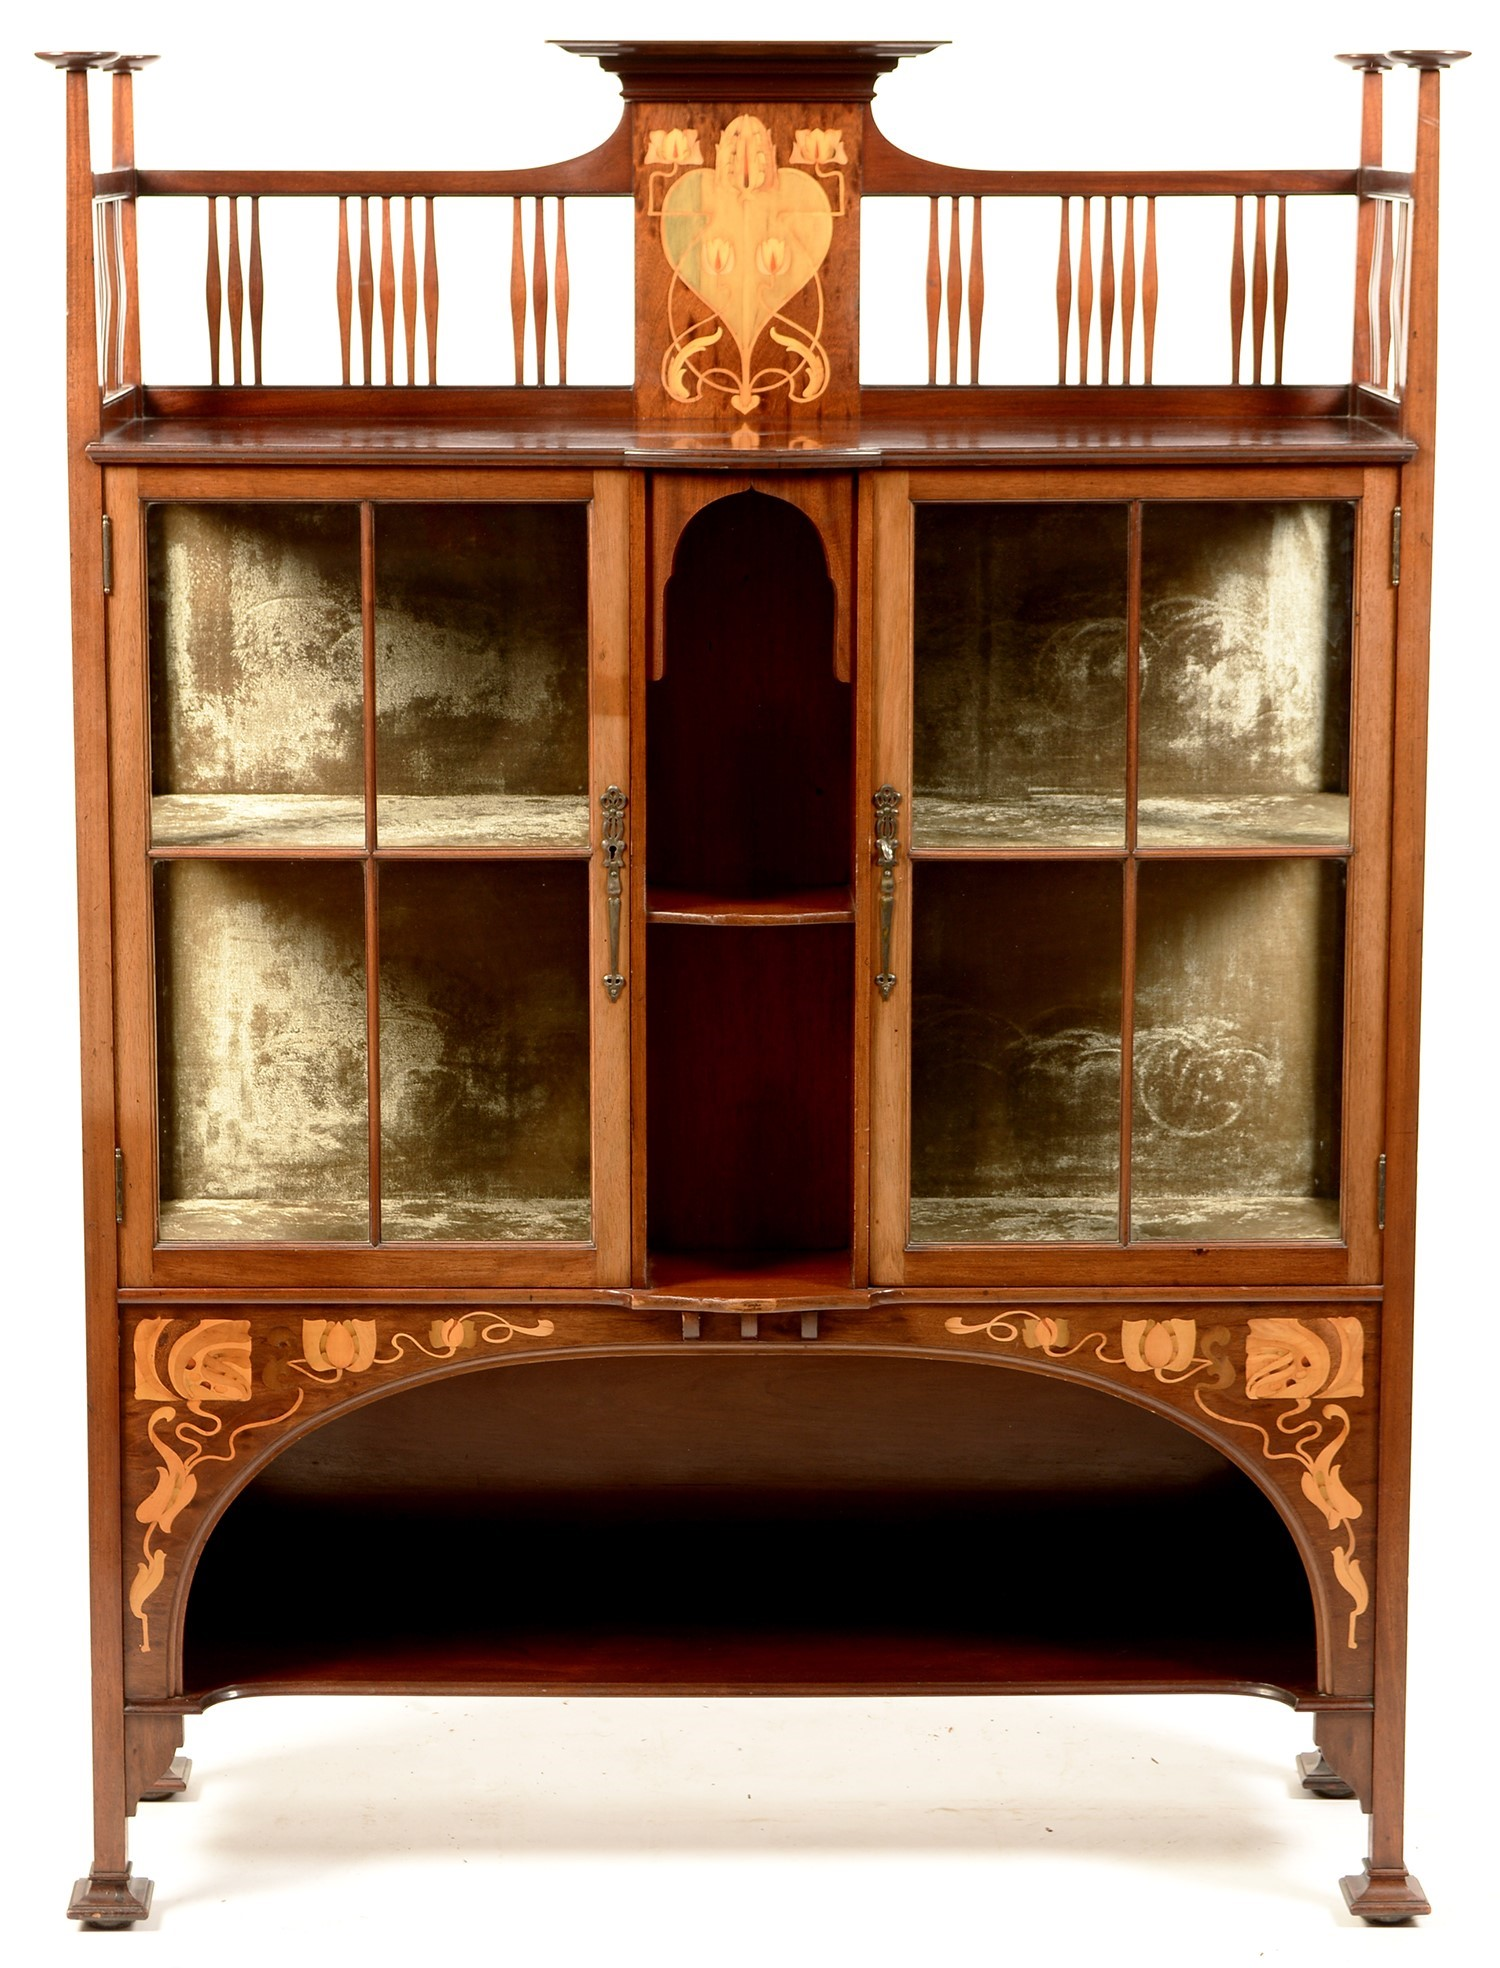 Shapland and Petter, Barnstaple: An early 20th Century inlaid mahogany display cabinet,